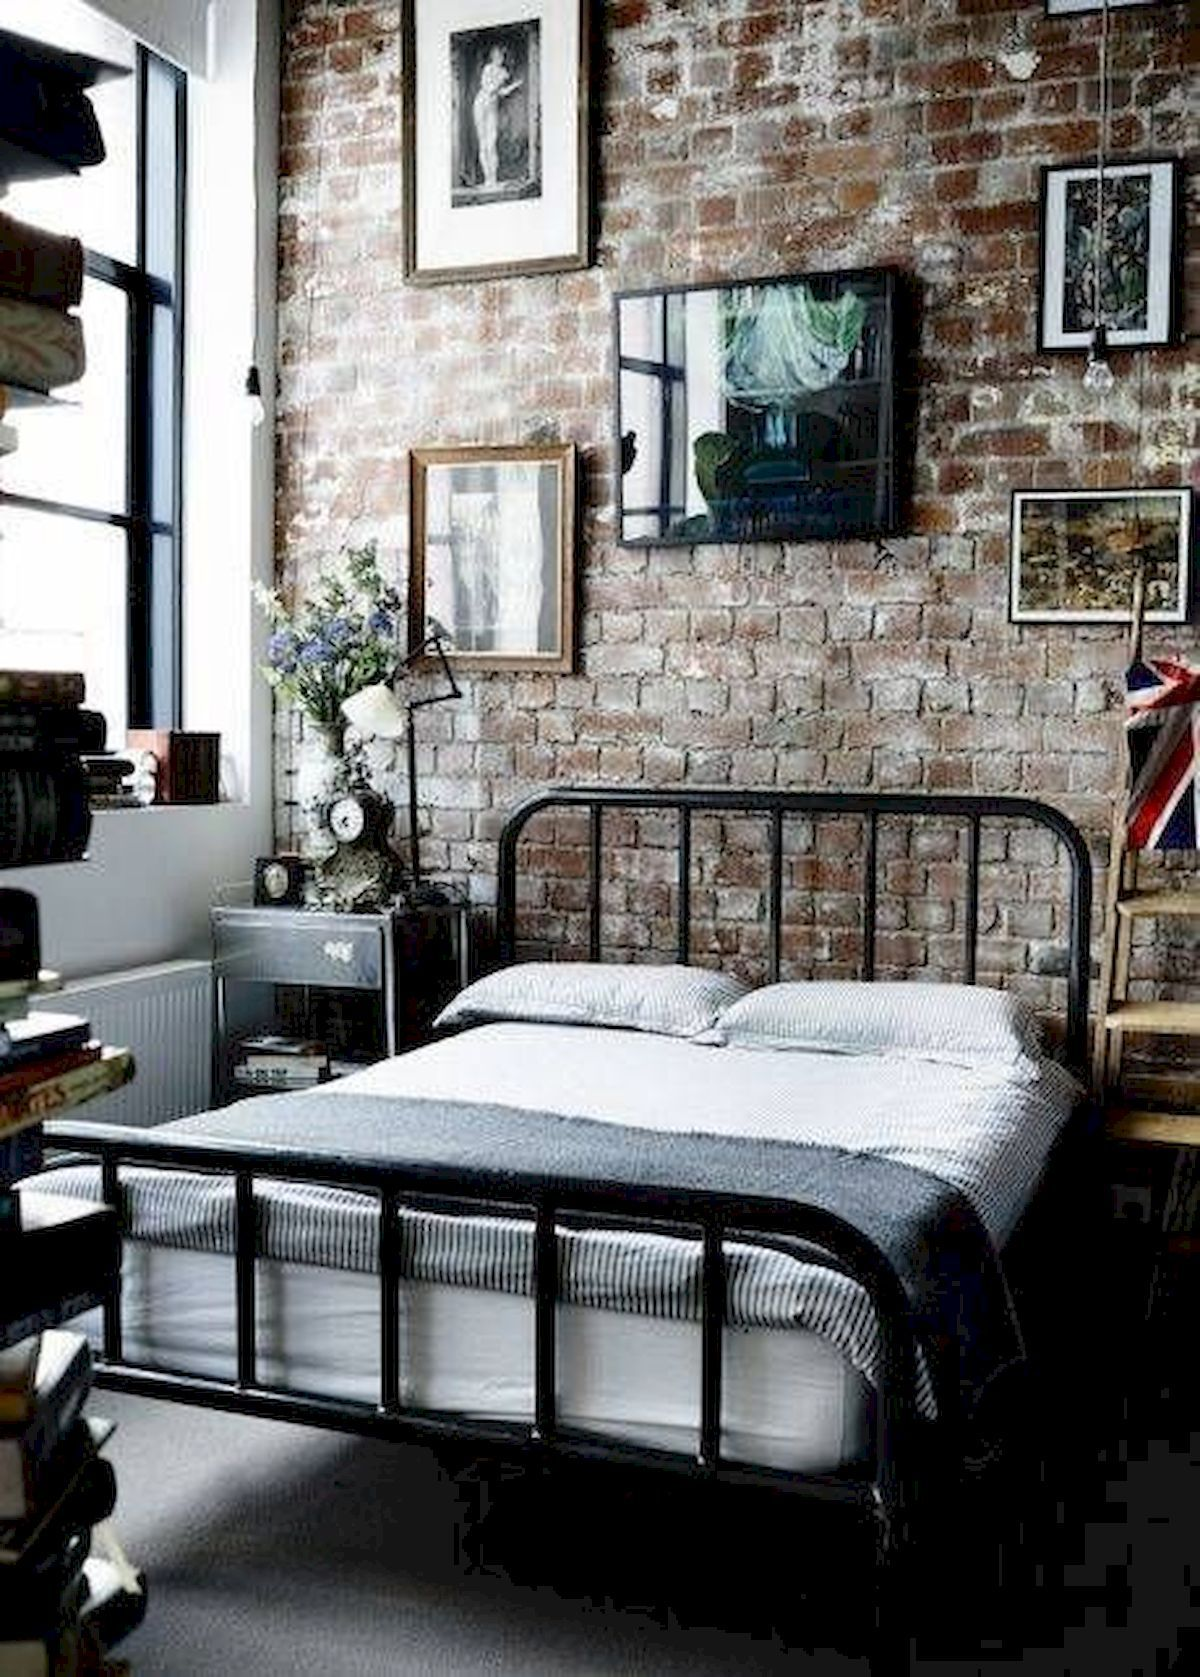 Adorable 40 Awesome Artsy Bedroom Decor Ideas Source S Worldecor Co